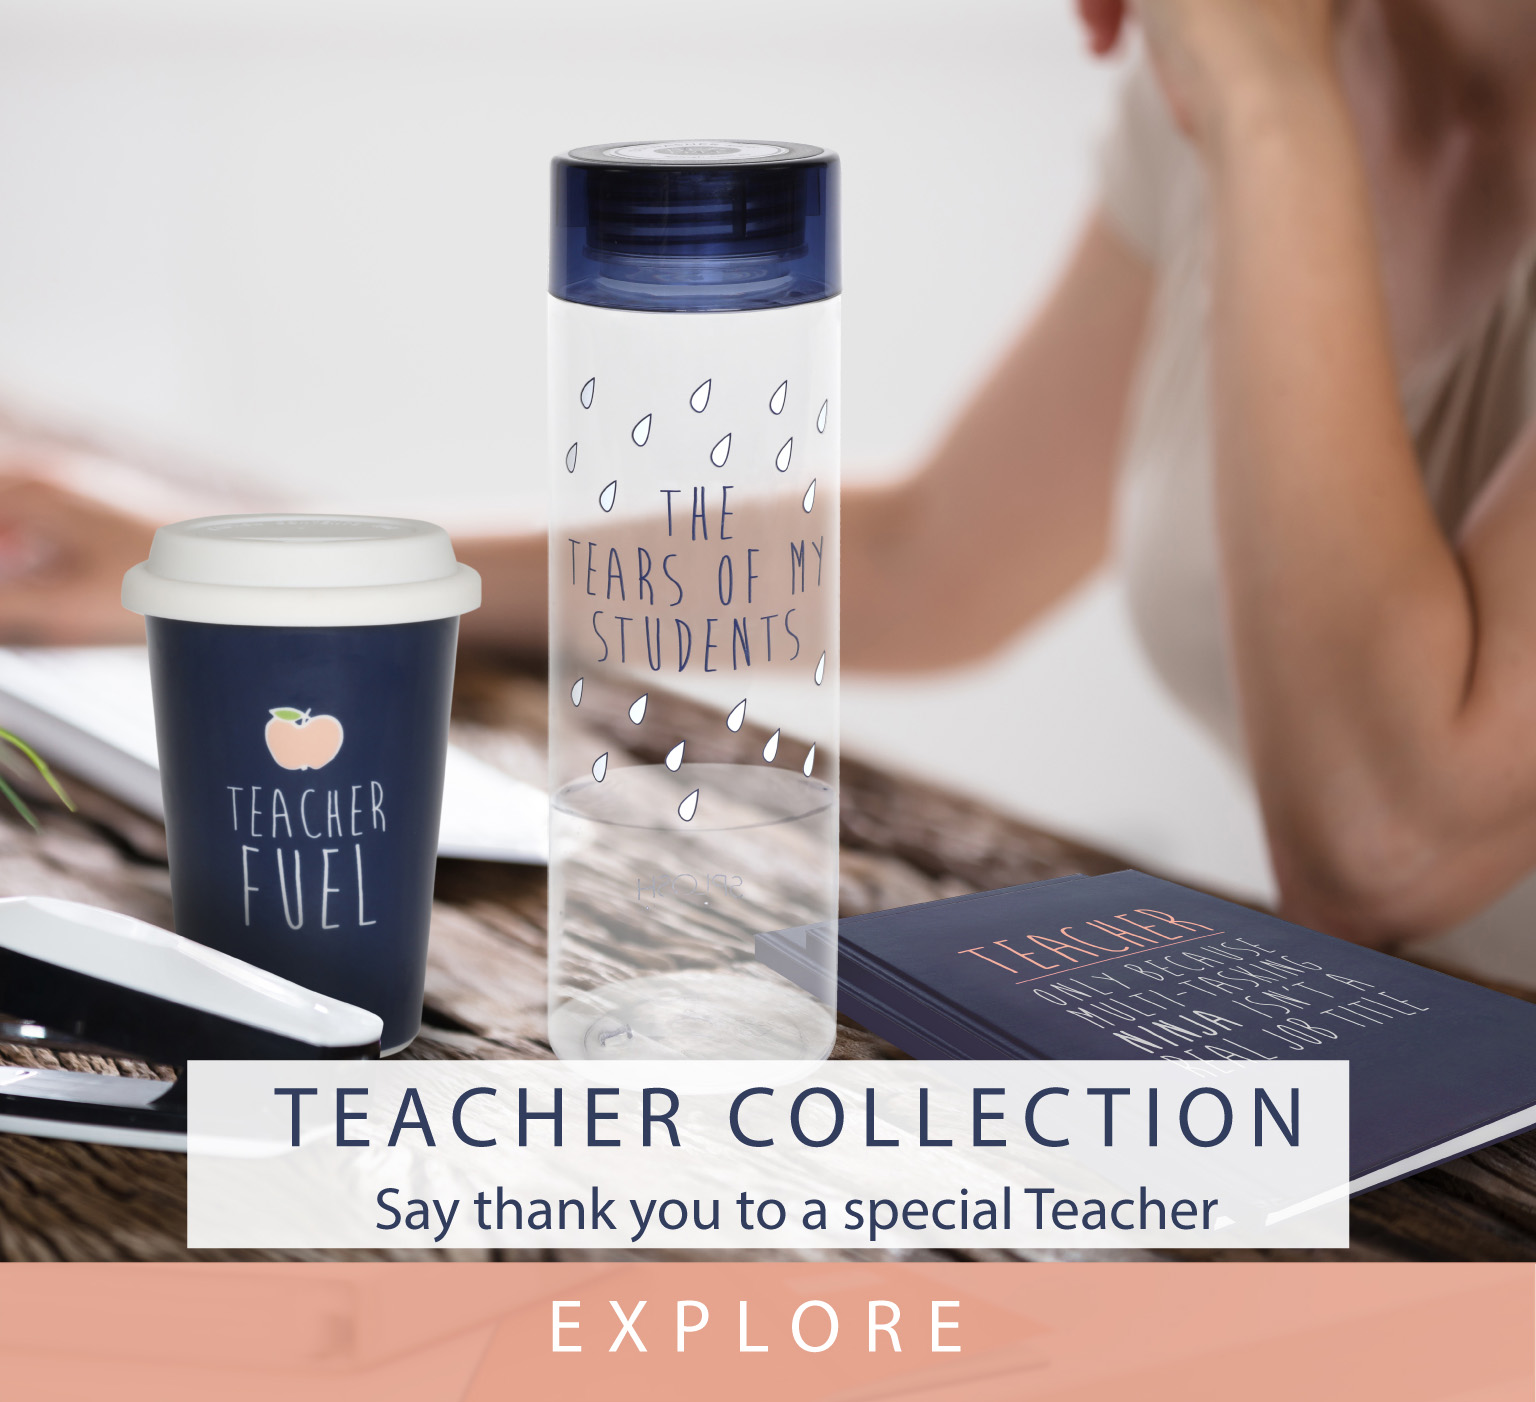 Say thank you to a special teacher